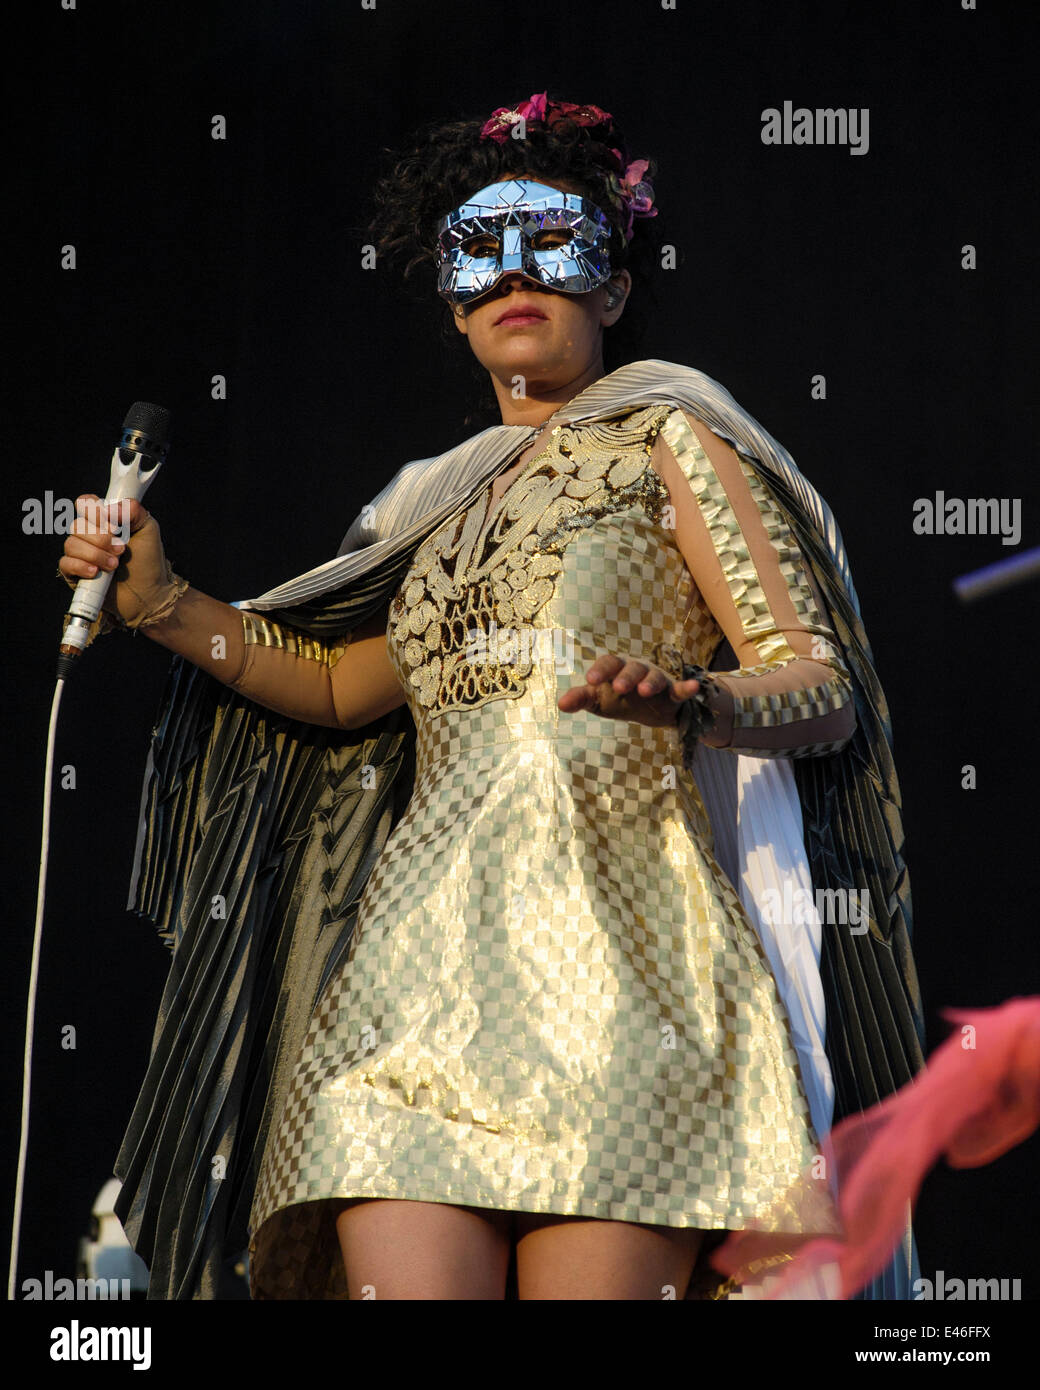 London, UK. 3rd July, 2014. Arcade Fire play British Summertime Hyde Park. Persons Pictured: Régine Chassagne. - Stock Image